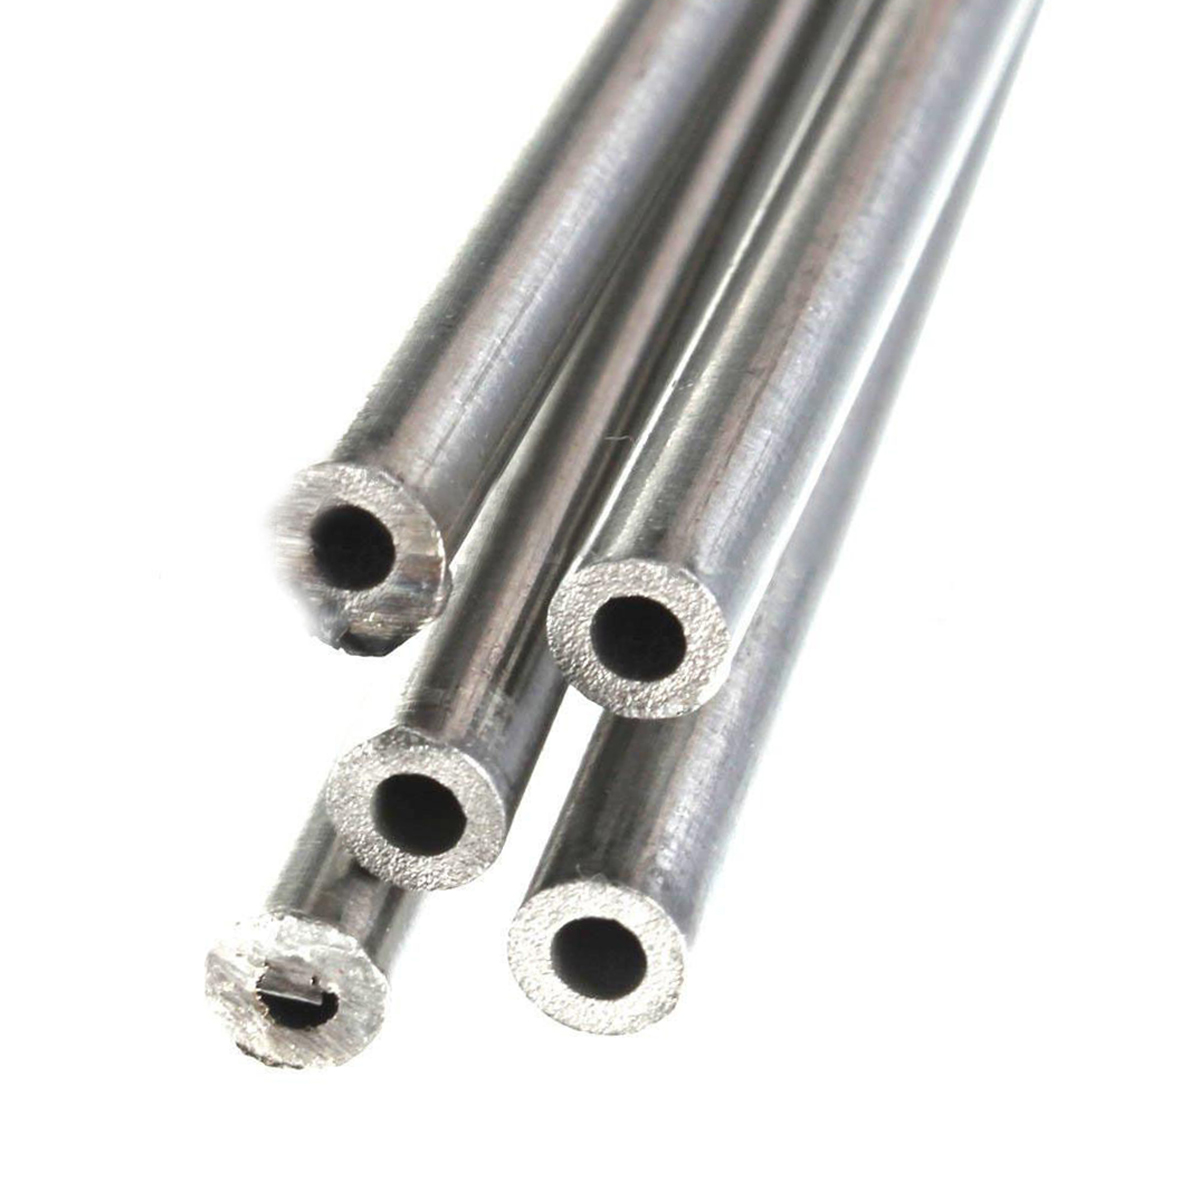 2pcs 304 Stainless Steel Capillary Tube Pipes 4mm OD 3mm ID 250mm Length Silver For Machinery 304 stainless steel capillary tube od 3mm x 1mm id length 250mm excellent rust resistance can be use to chemical industry etc